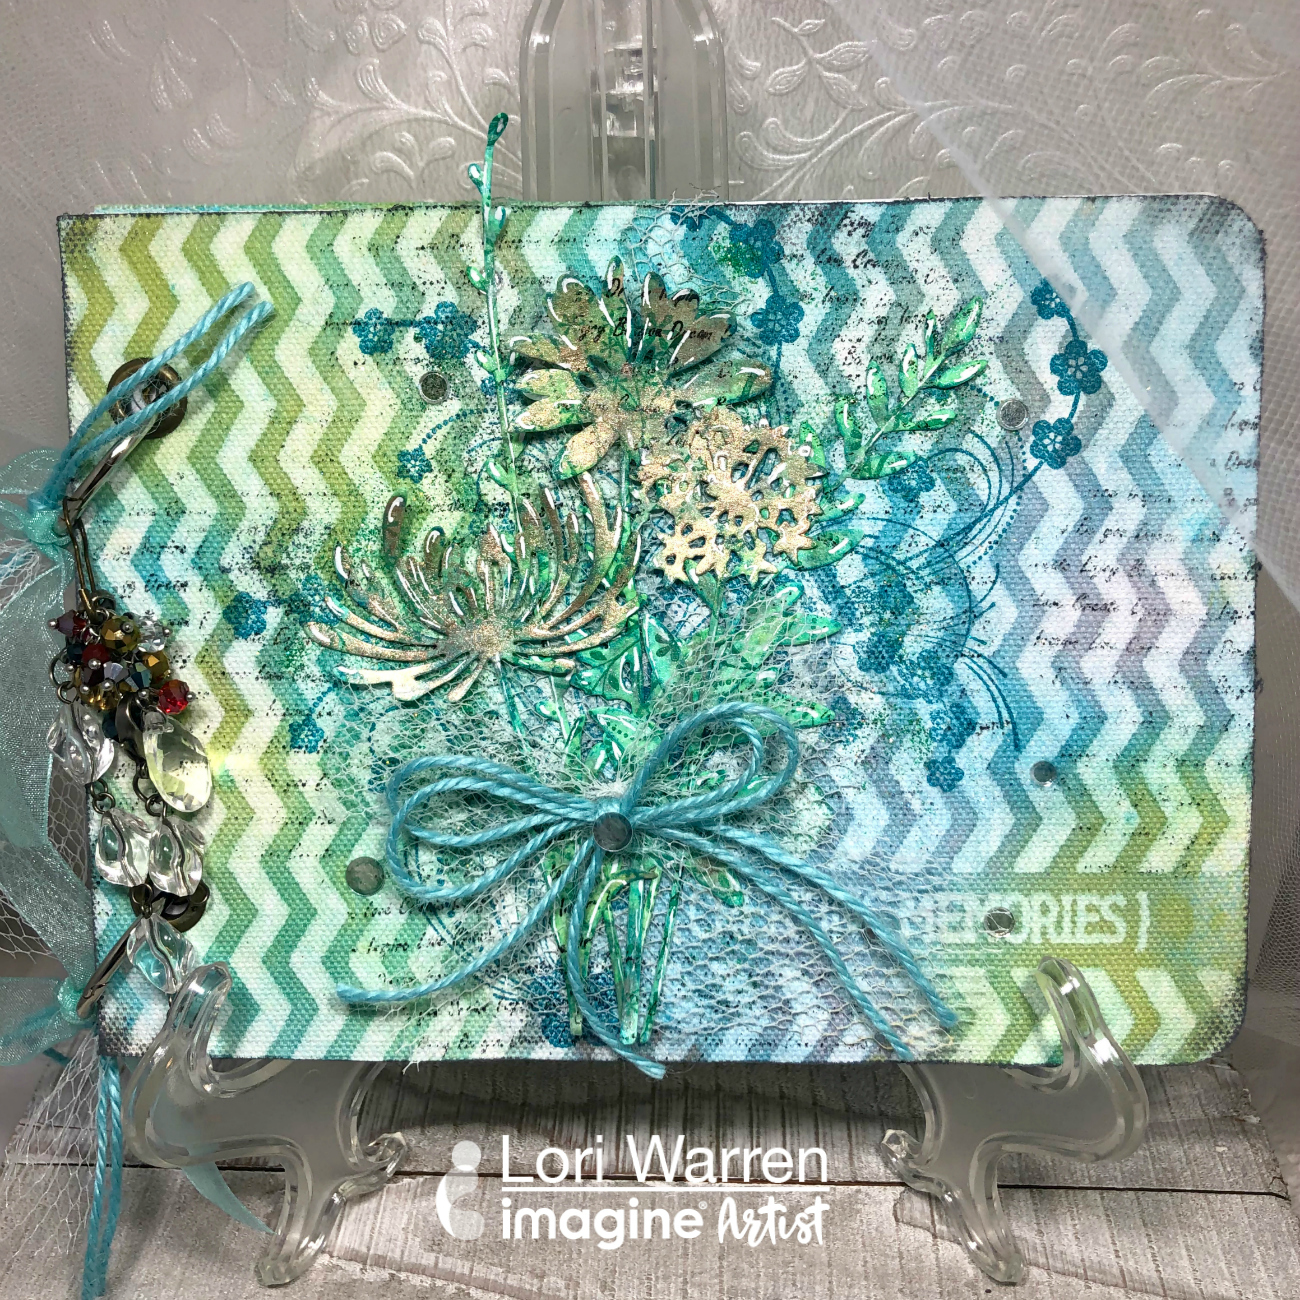 Handmade creative art journal featuring a mixed media cover in blues and greens.